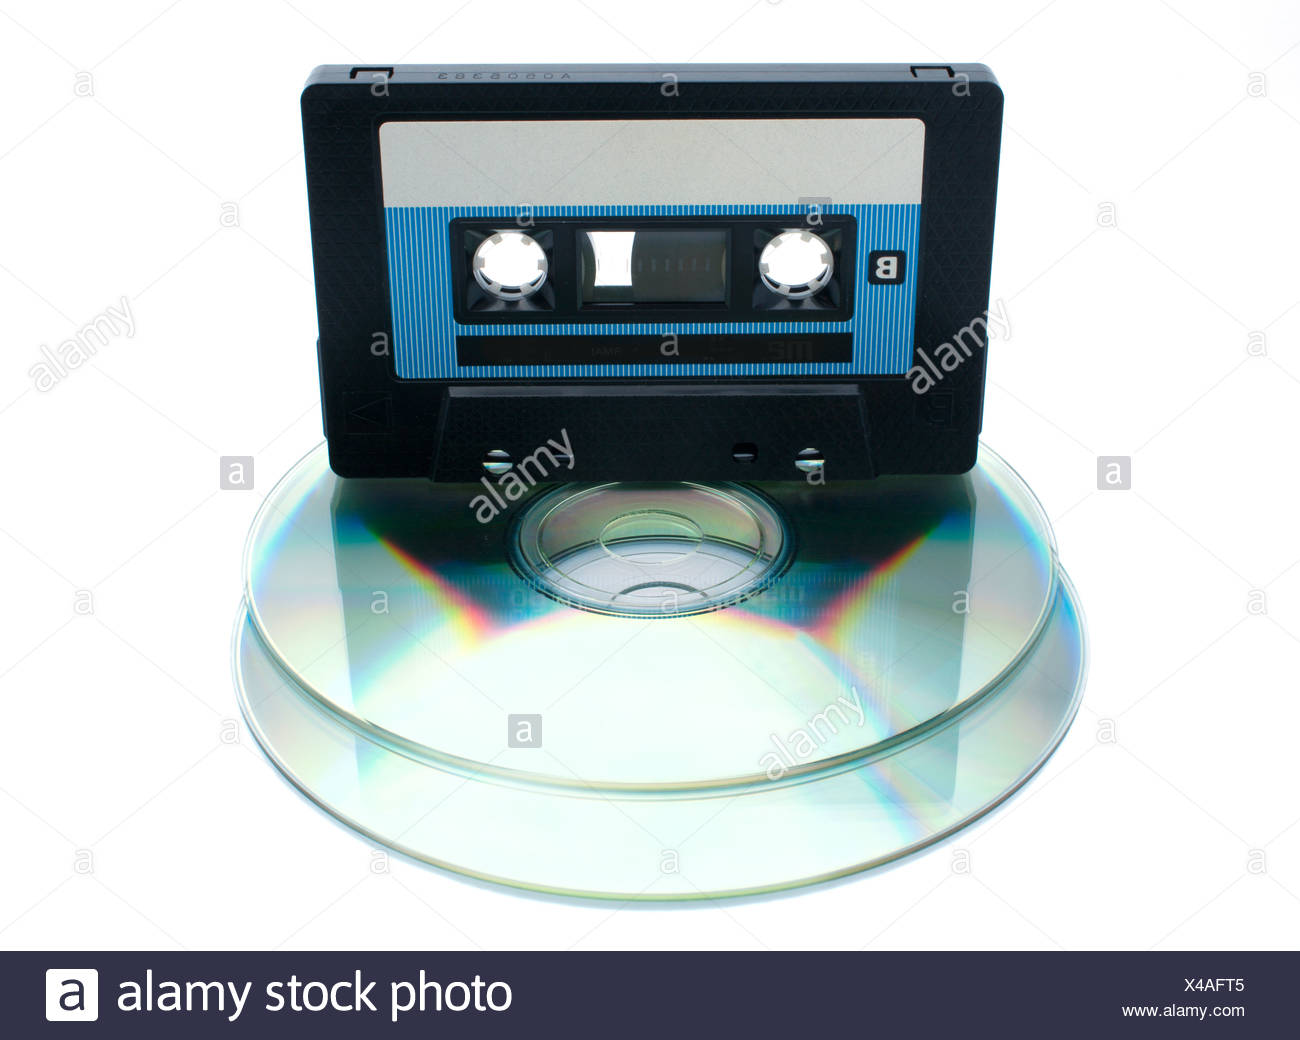 Analog audio tape cassette and digital compact disc on a white background - Stock Image